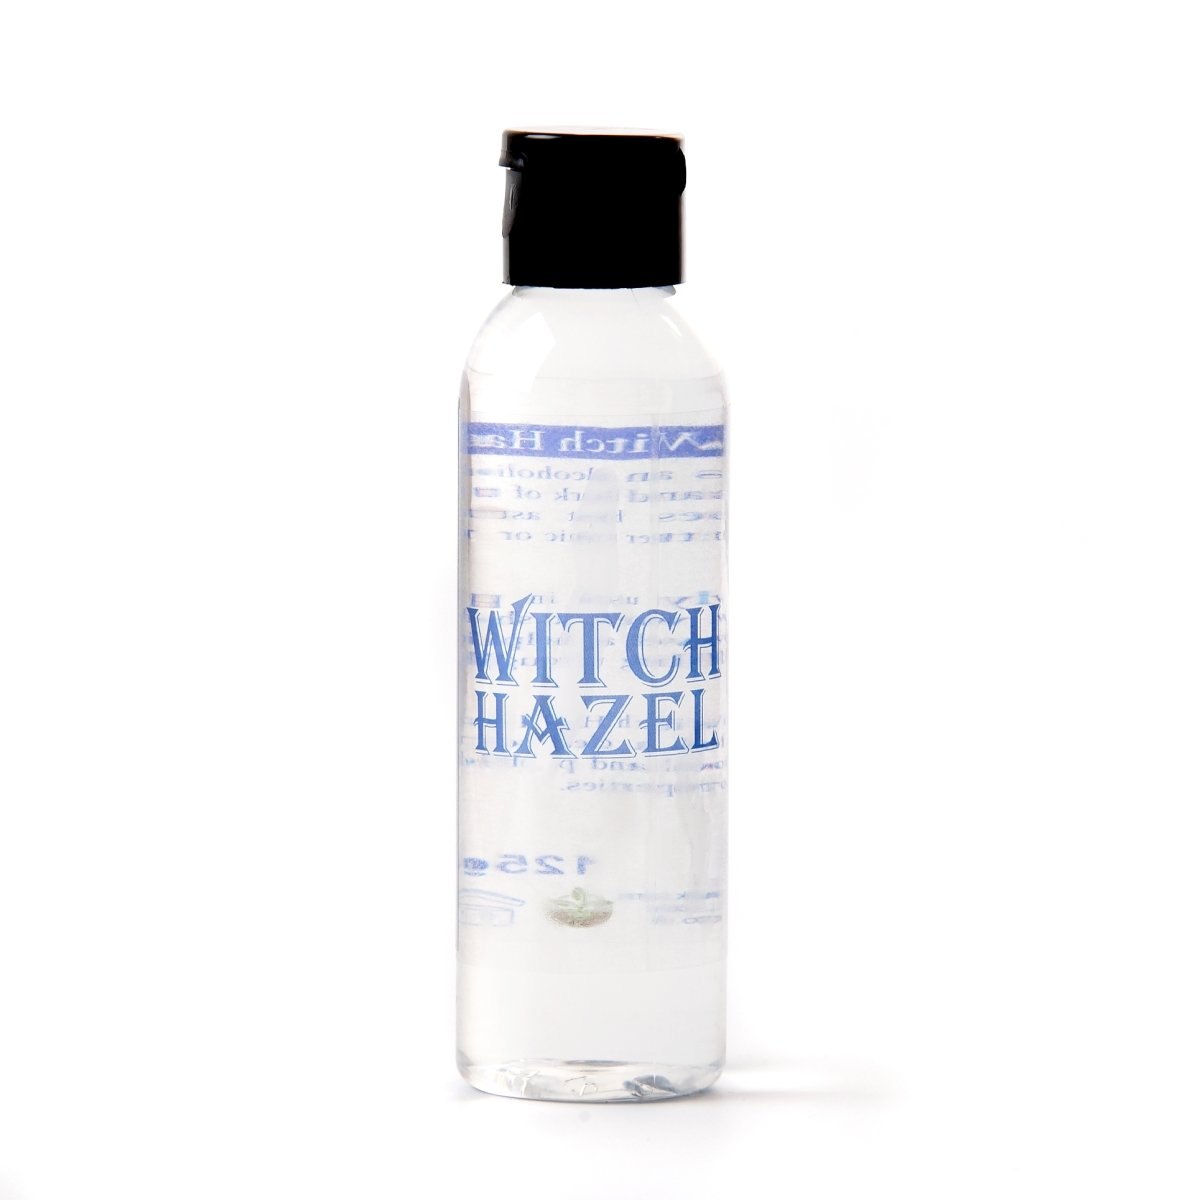 Witch Hazel - Herbal Extracts - Mystic Moments UK